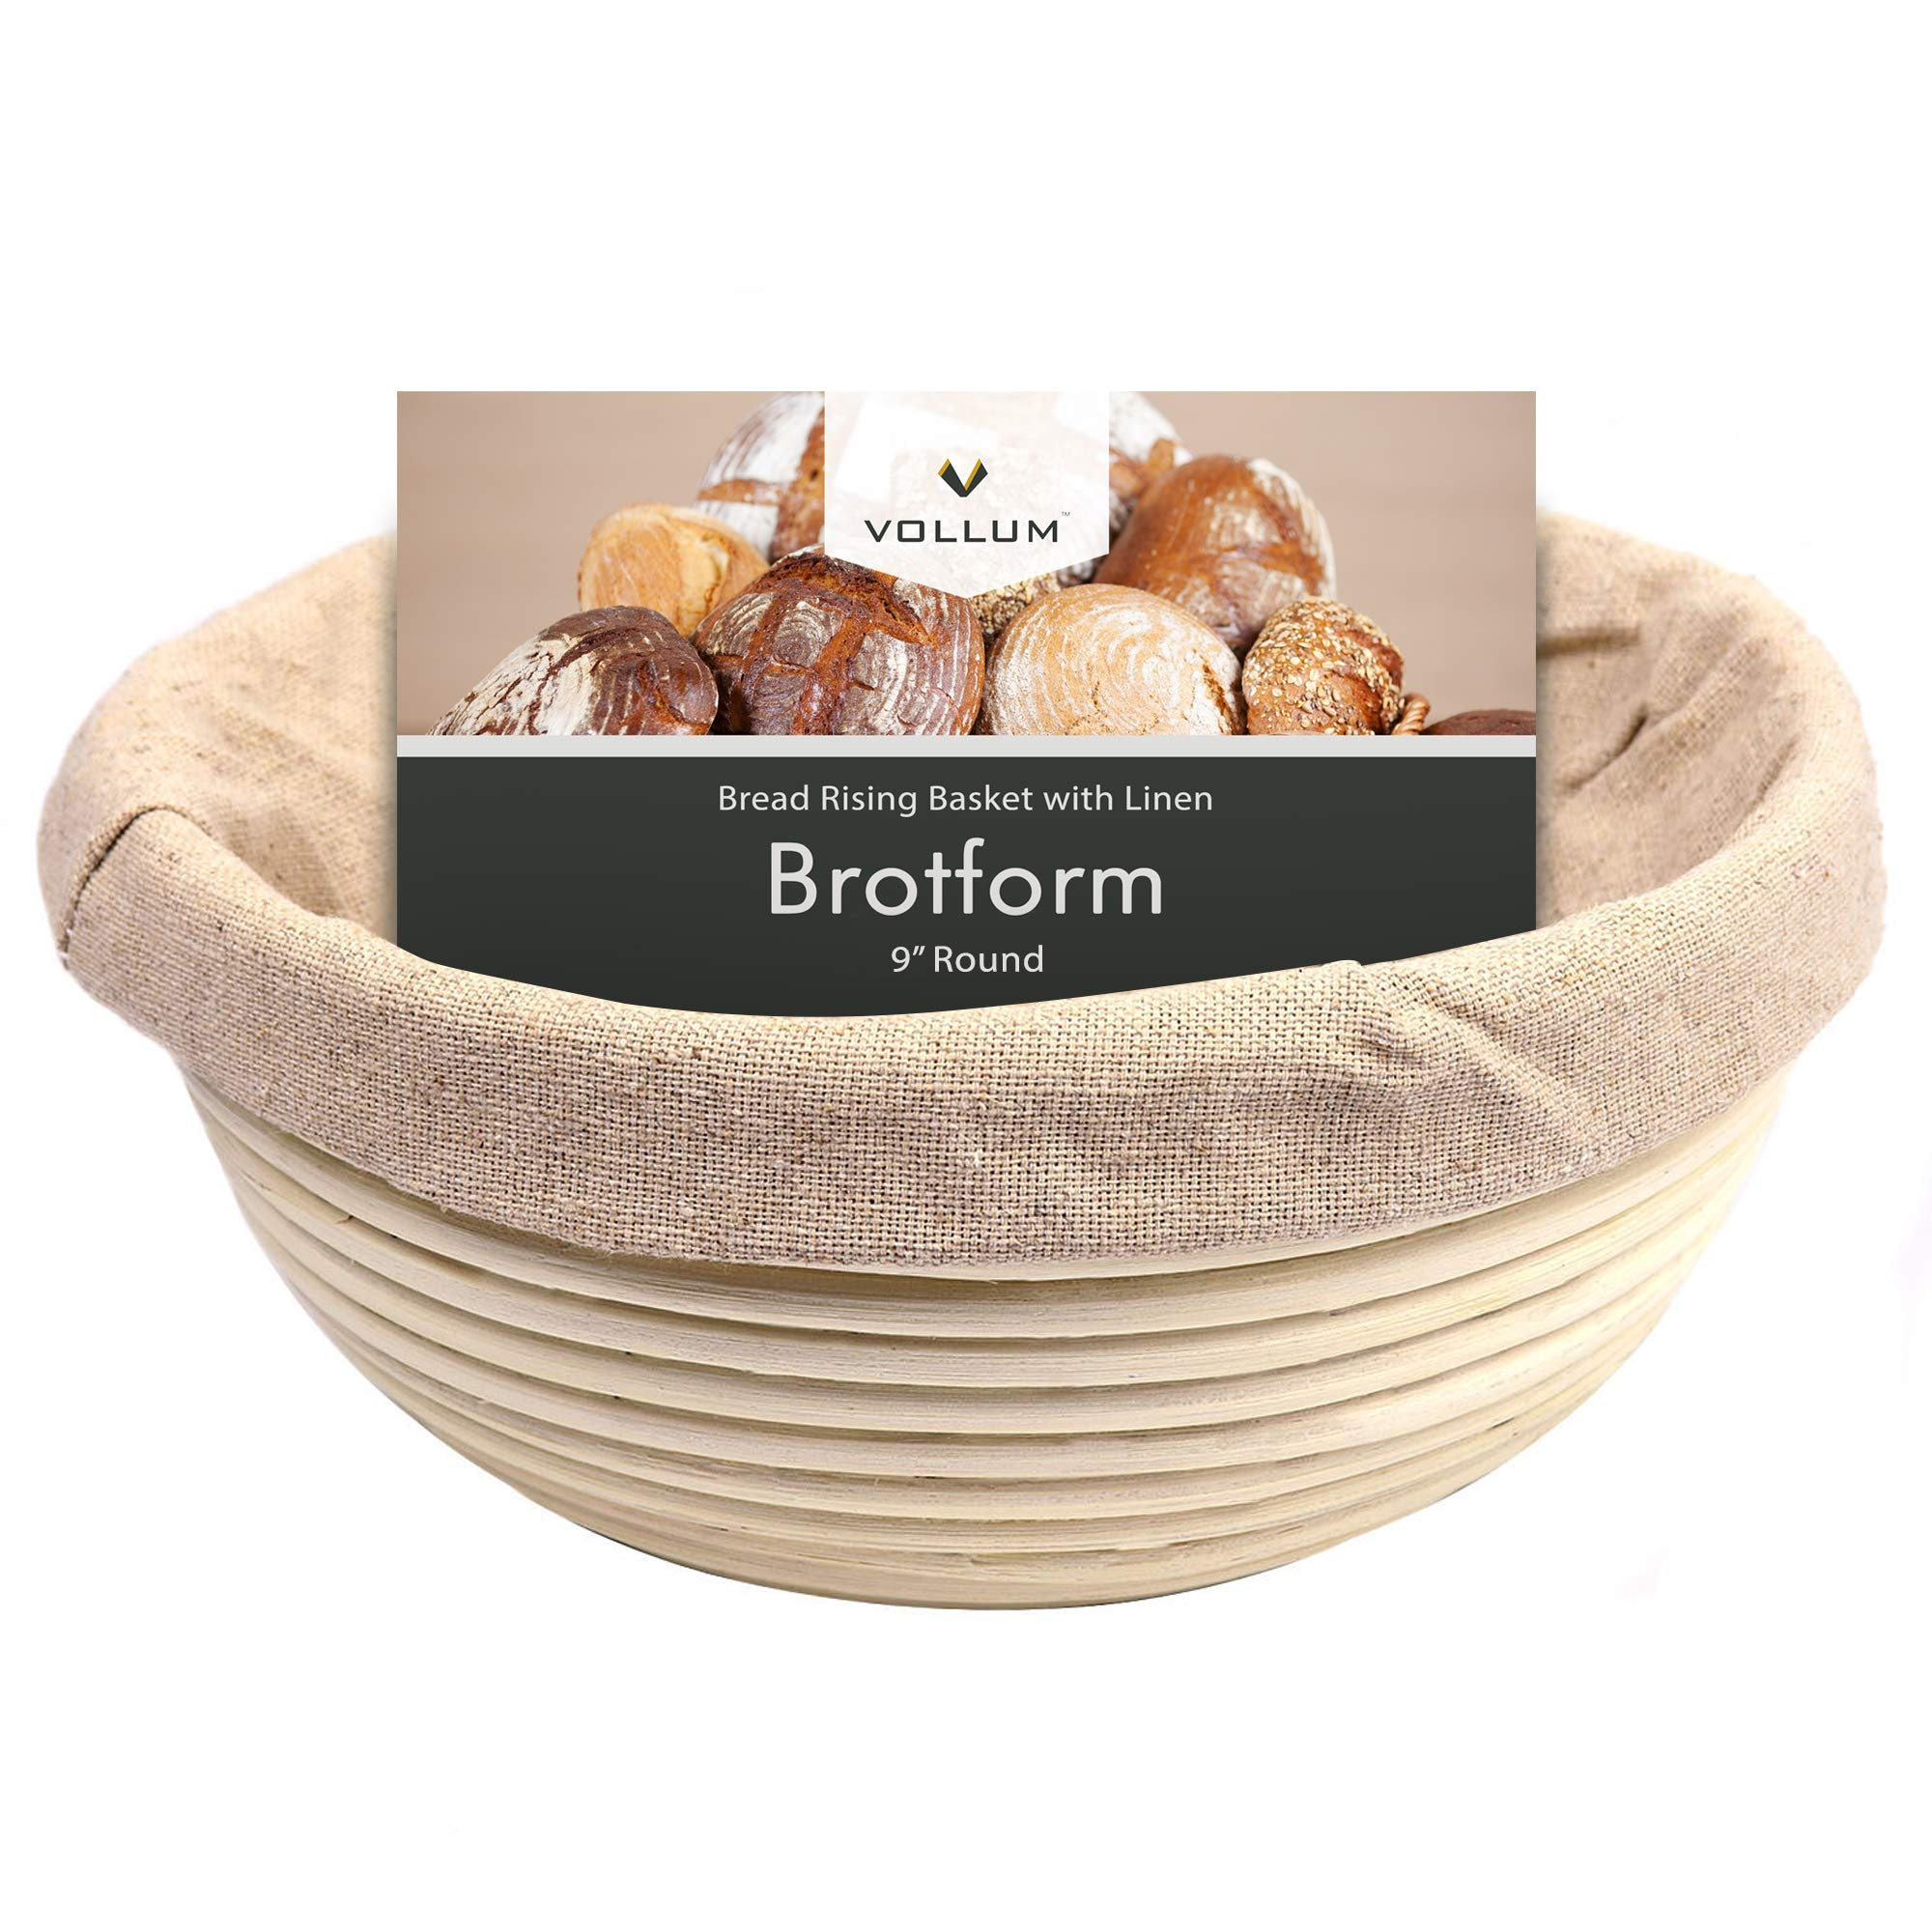 Vollum Bread Proofing Basket Banneton Baking Supplies for Beginners & Professional Bakers, Handwoven Rattan Cane Bread Maker with Linen for Artisan Breads, 9 x 4.25 Inch, 1-Pound Round Brotform